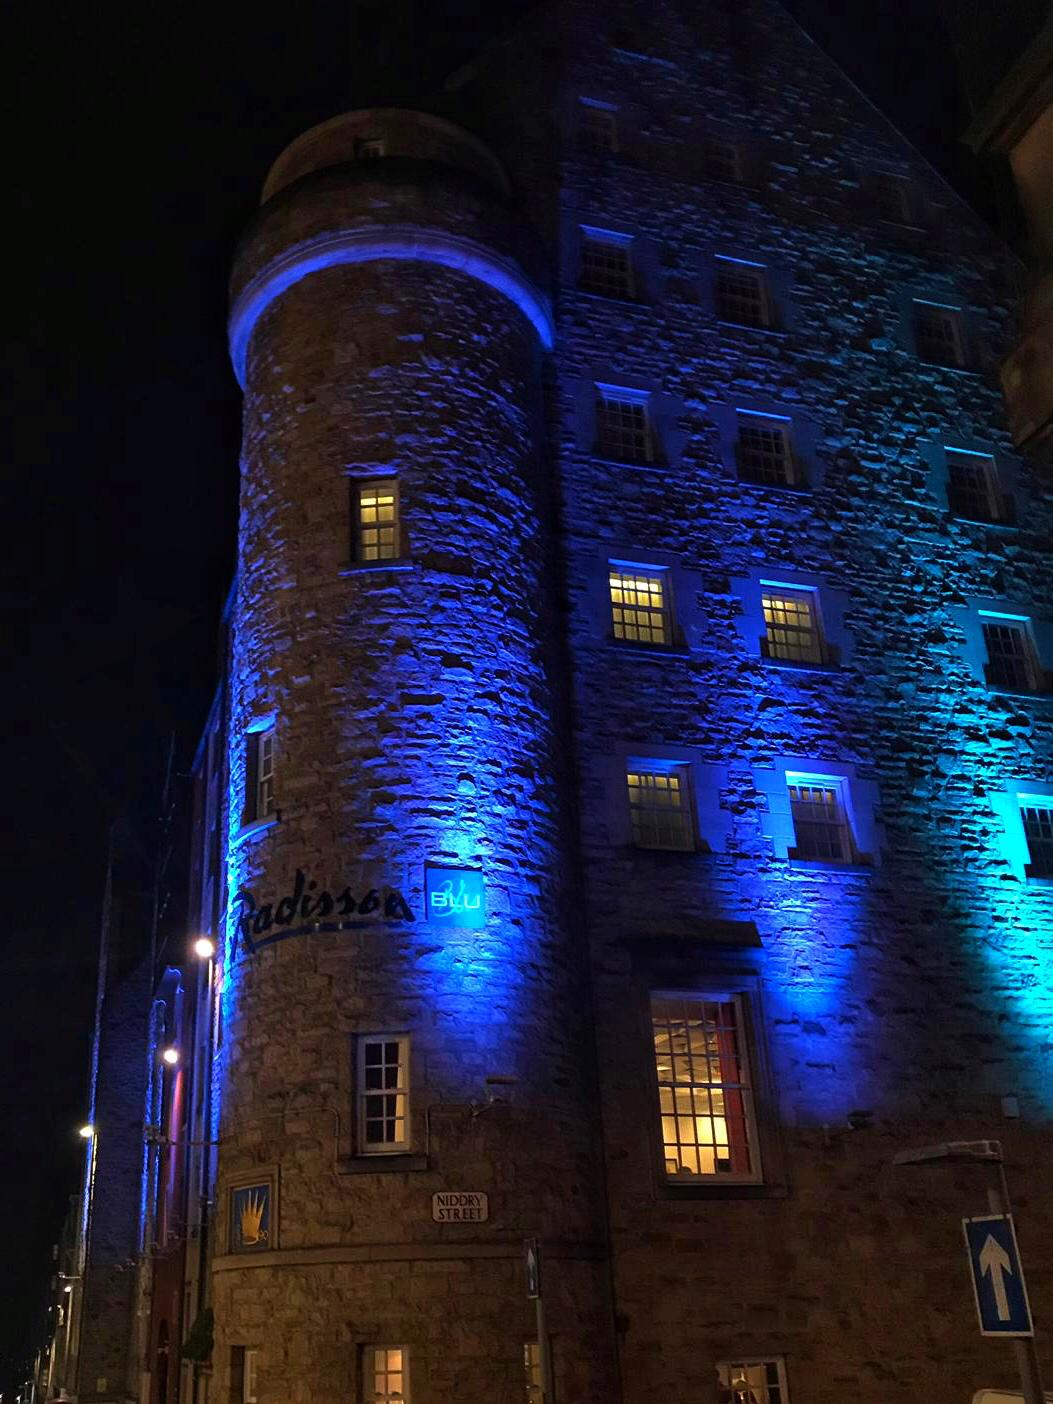 Radisson Blu Hotel Edinburgh Review 2